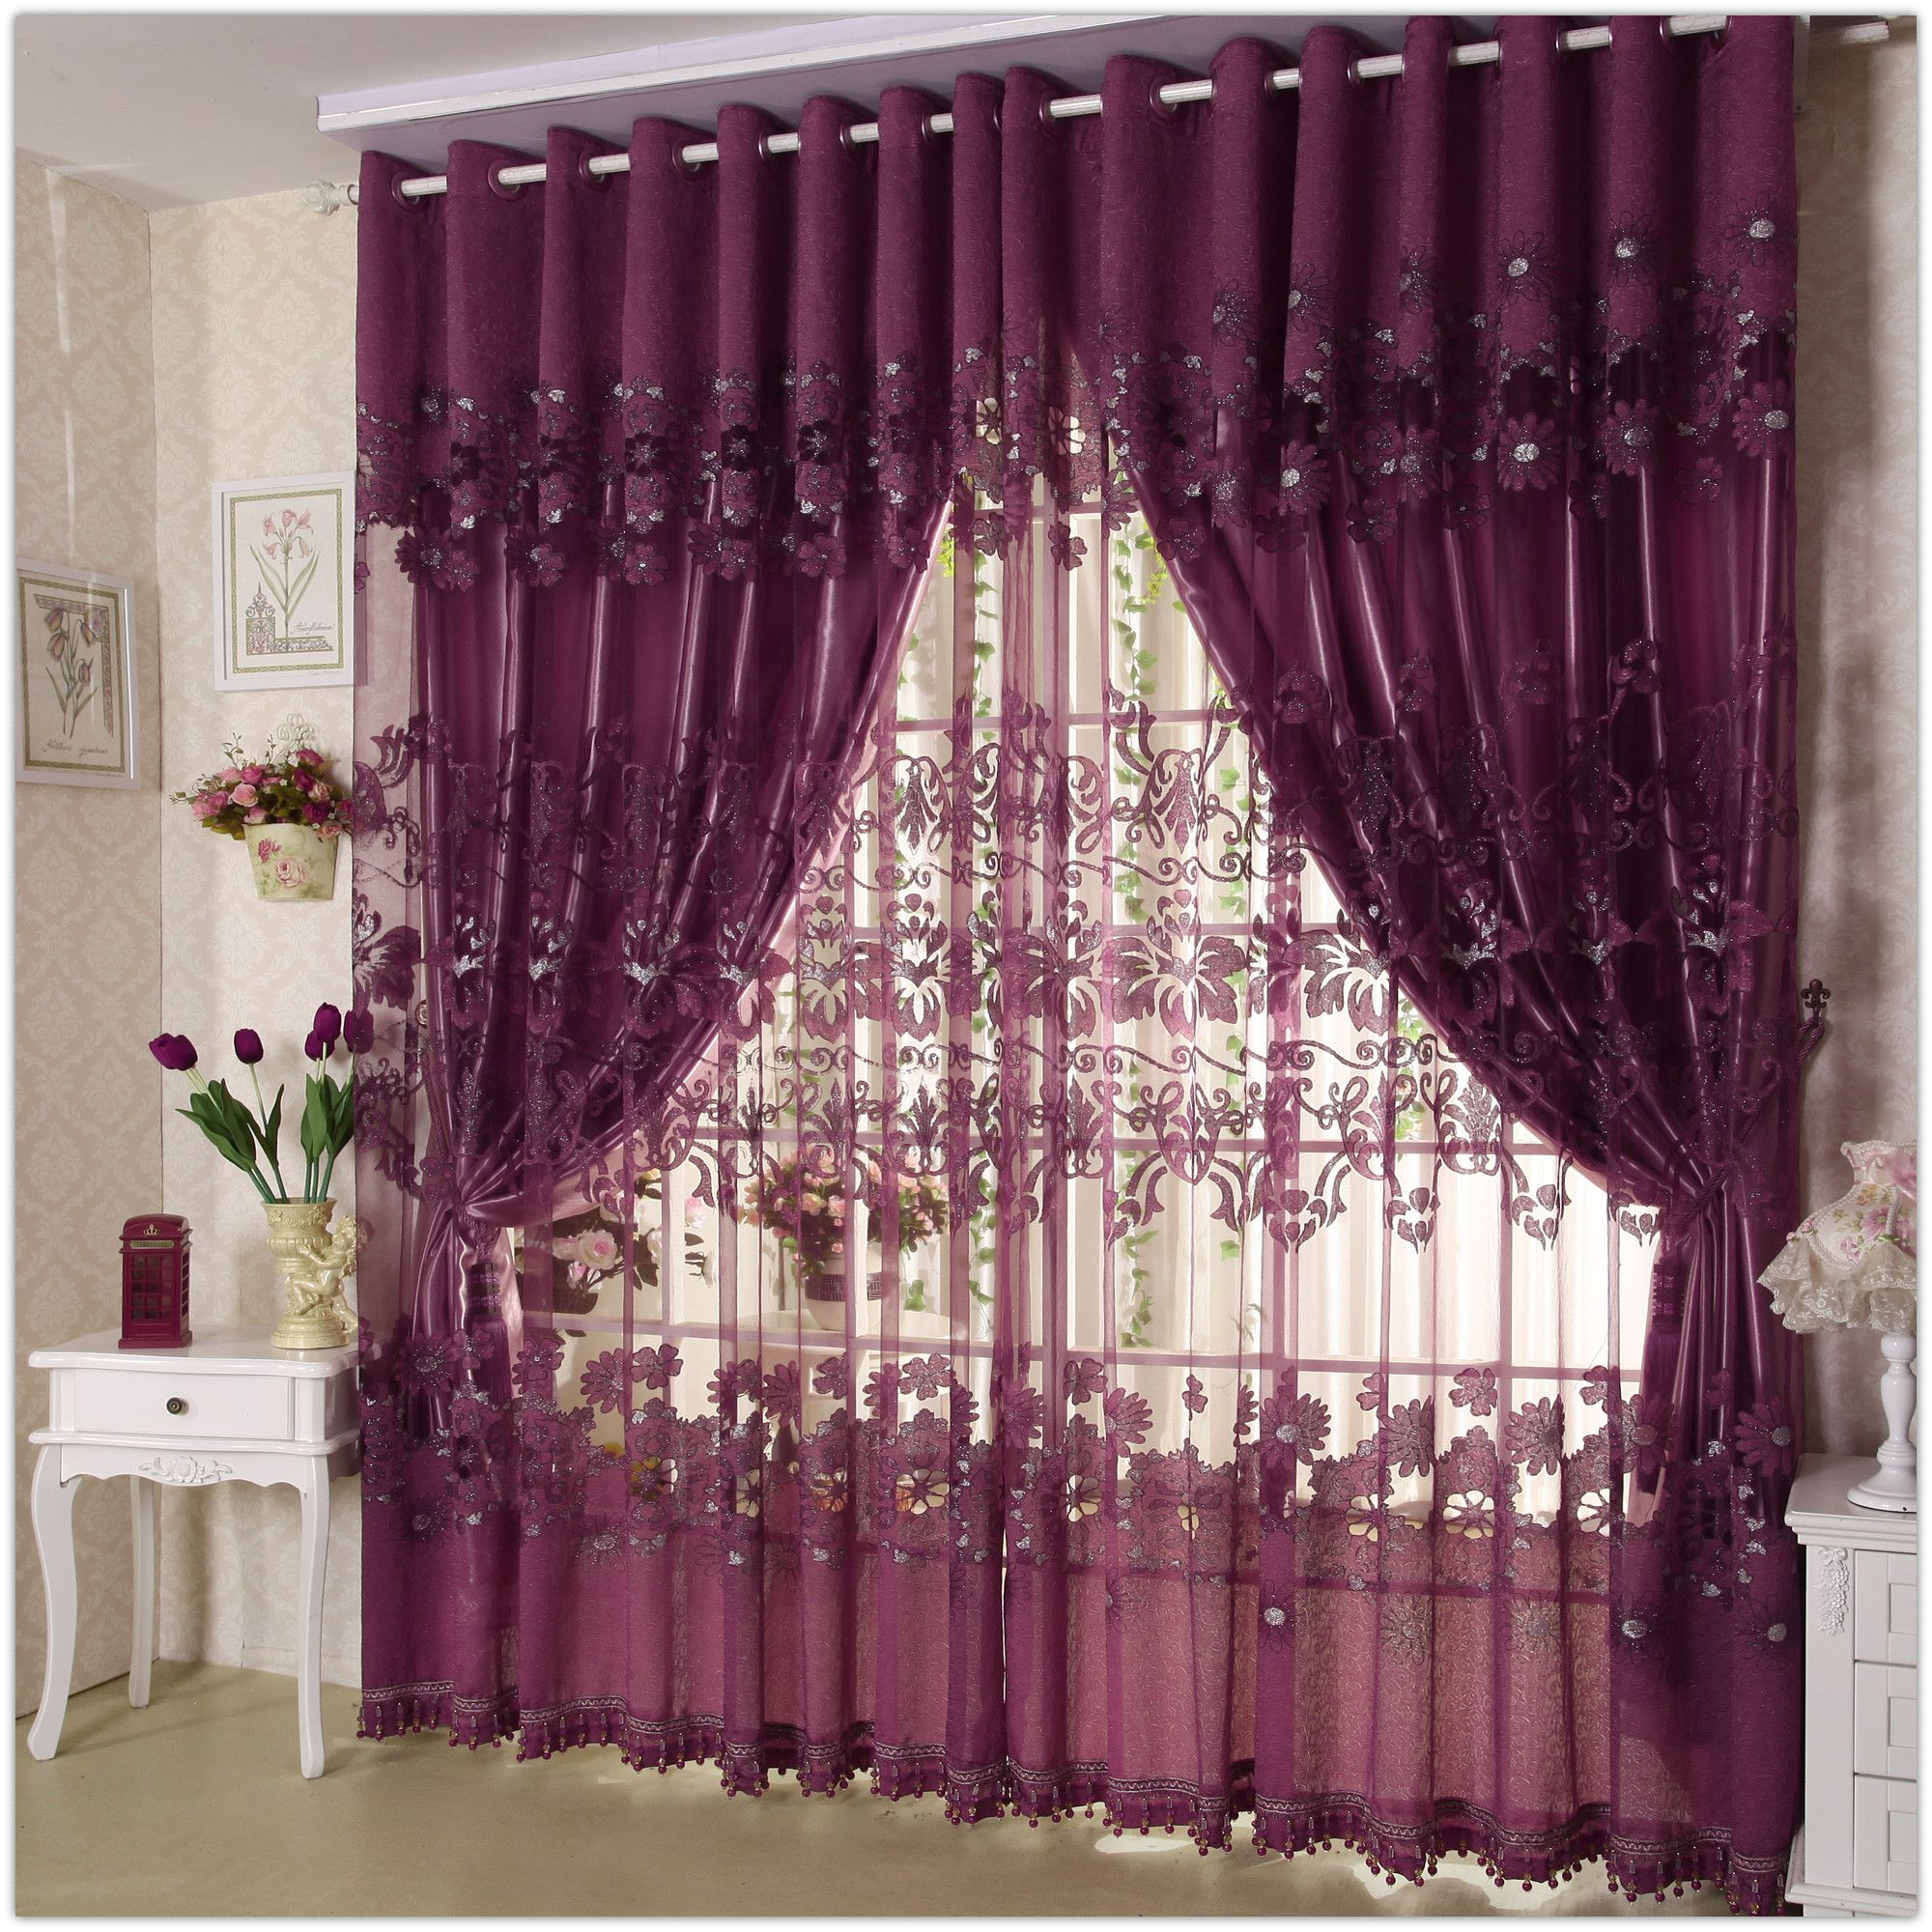 Quality Flower Purple Curtain Fashion Modern Brief Sheer With Blackout Lining Curtains Free Shipping 9611